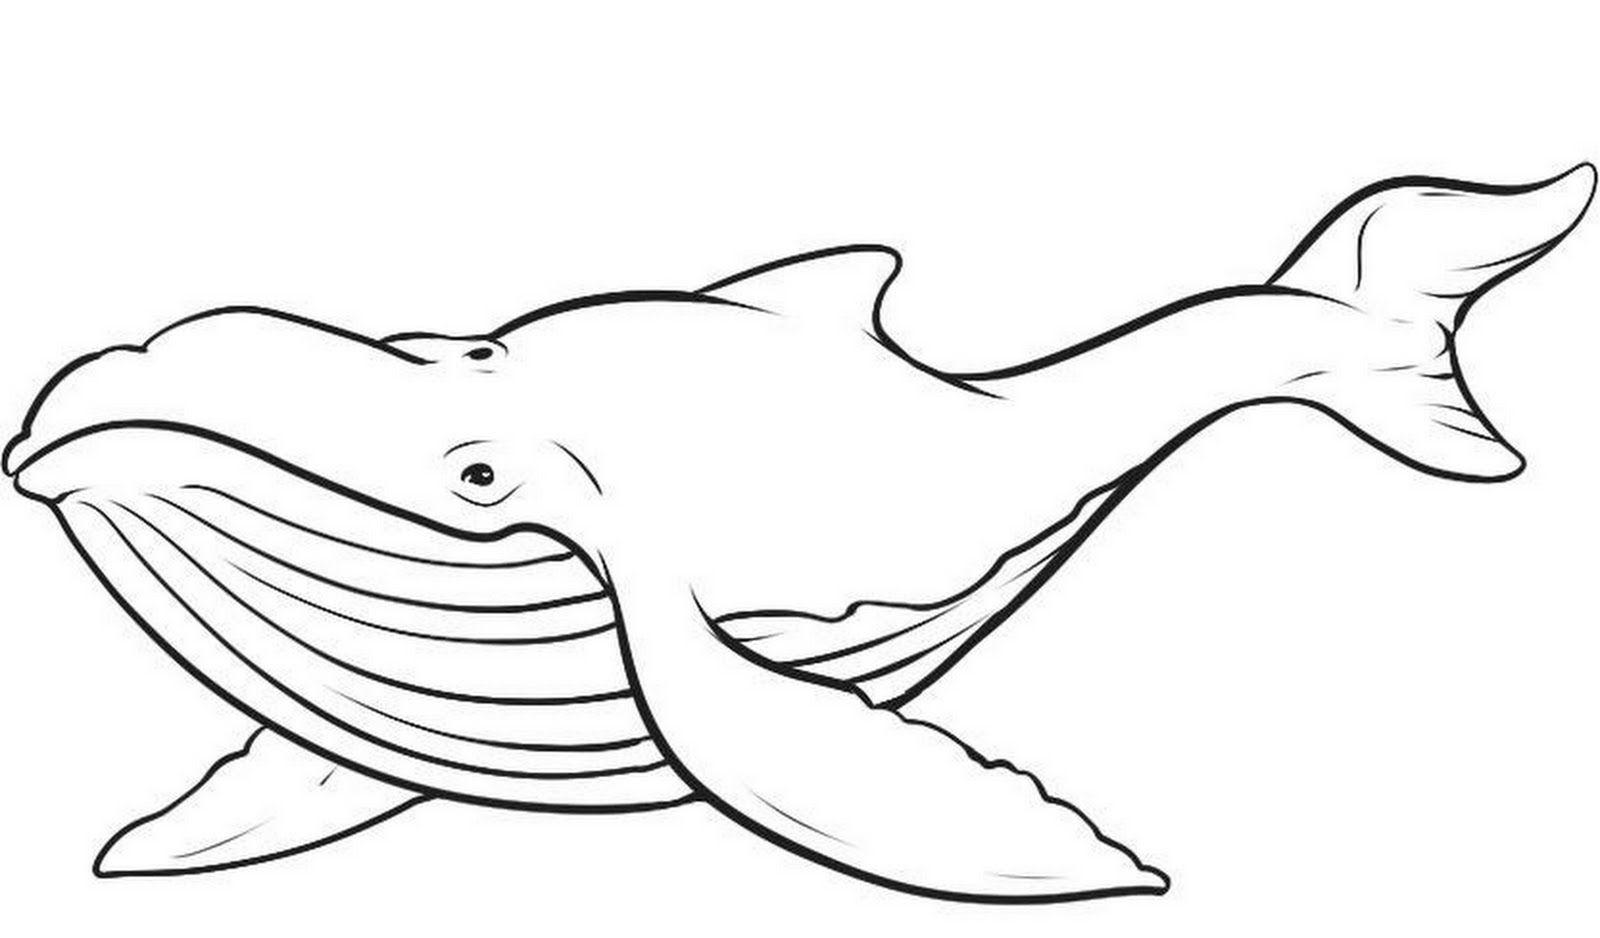 Uncategorized Humpback Whale Coloring Page whale coloring pages 3 kids download 3